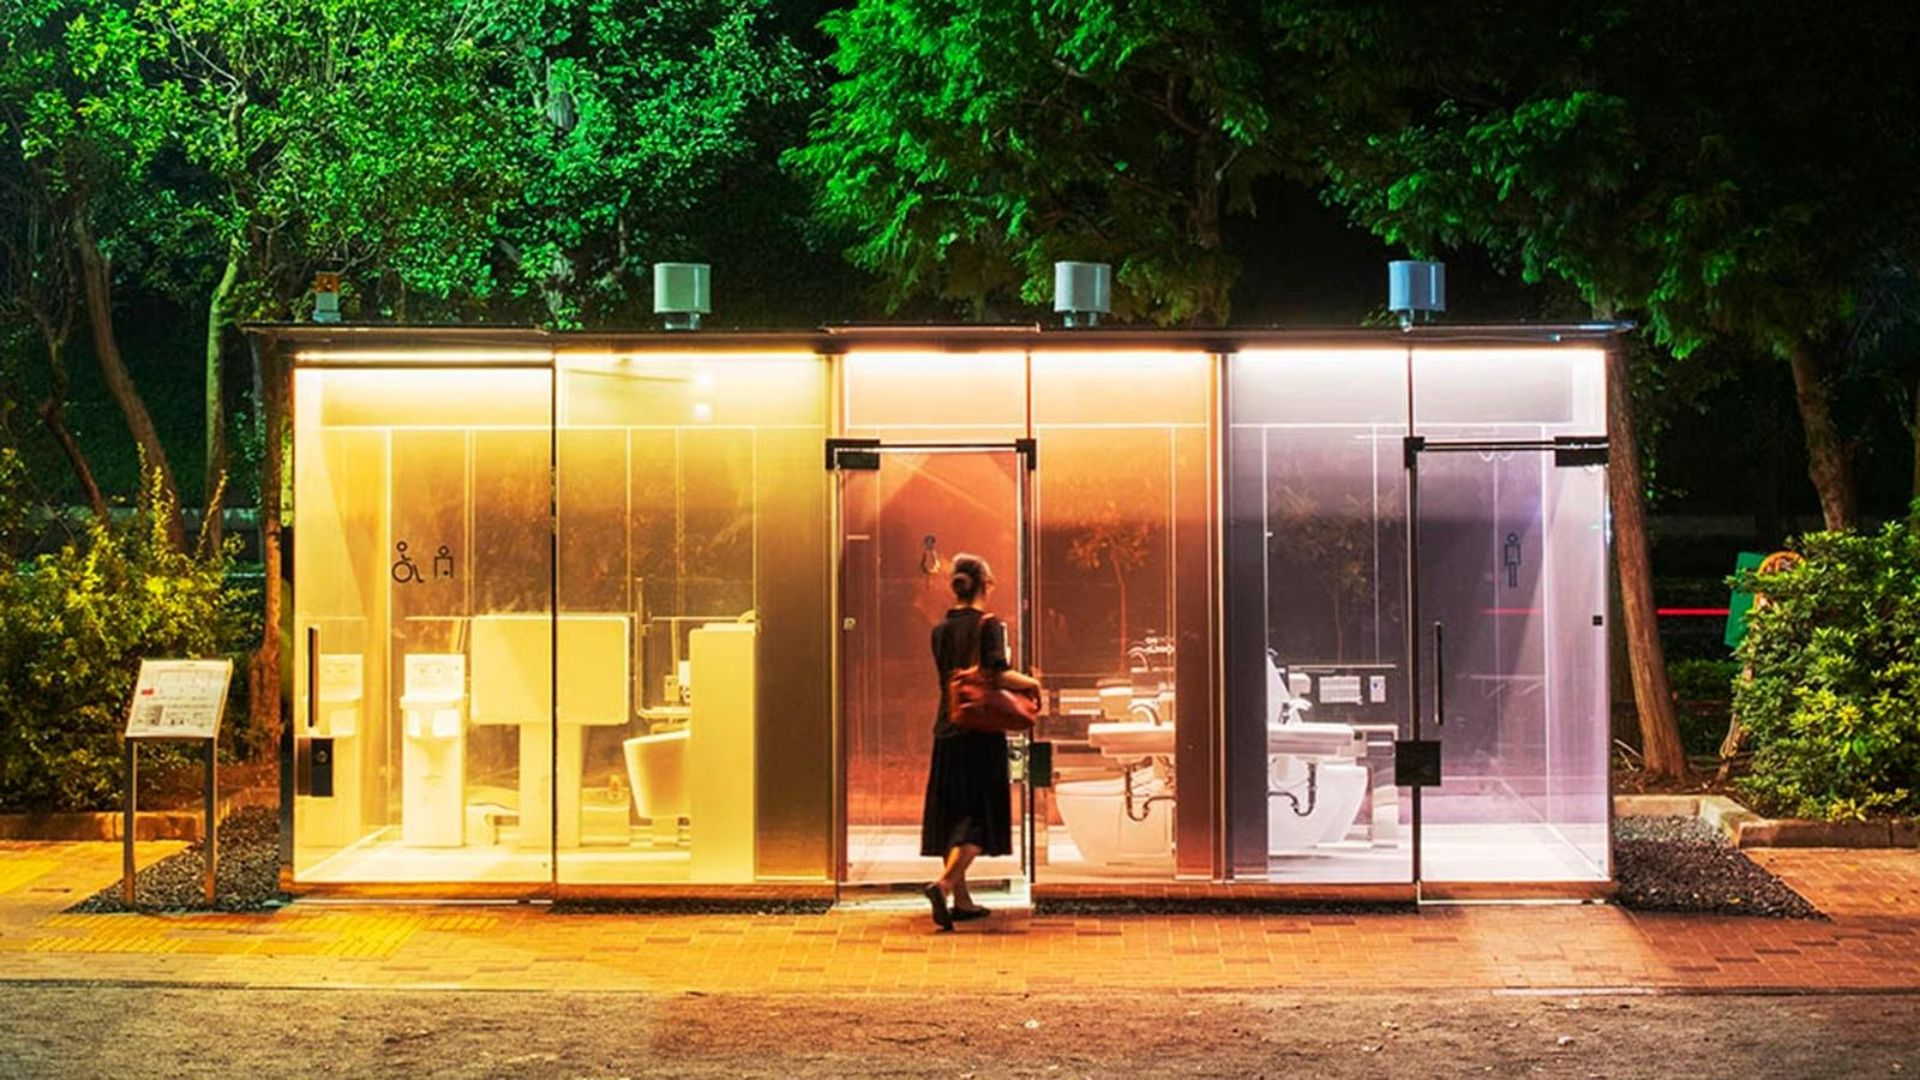 Three transparent toilets, lit up from within yellow, orange and lilac with a woman entering the centre toilet